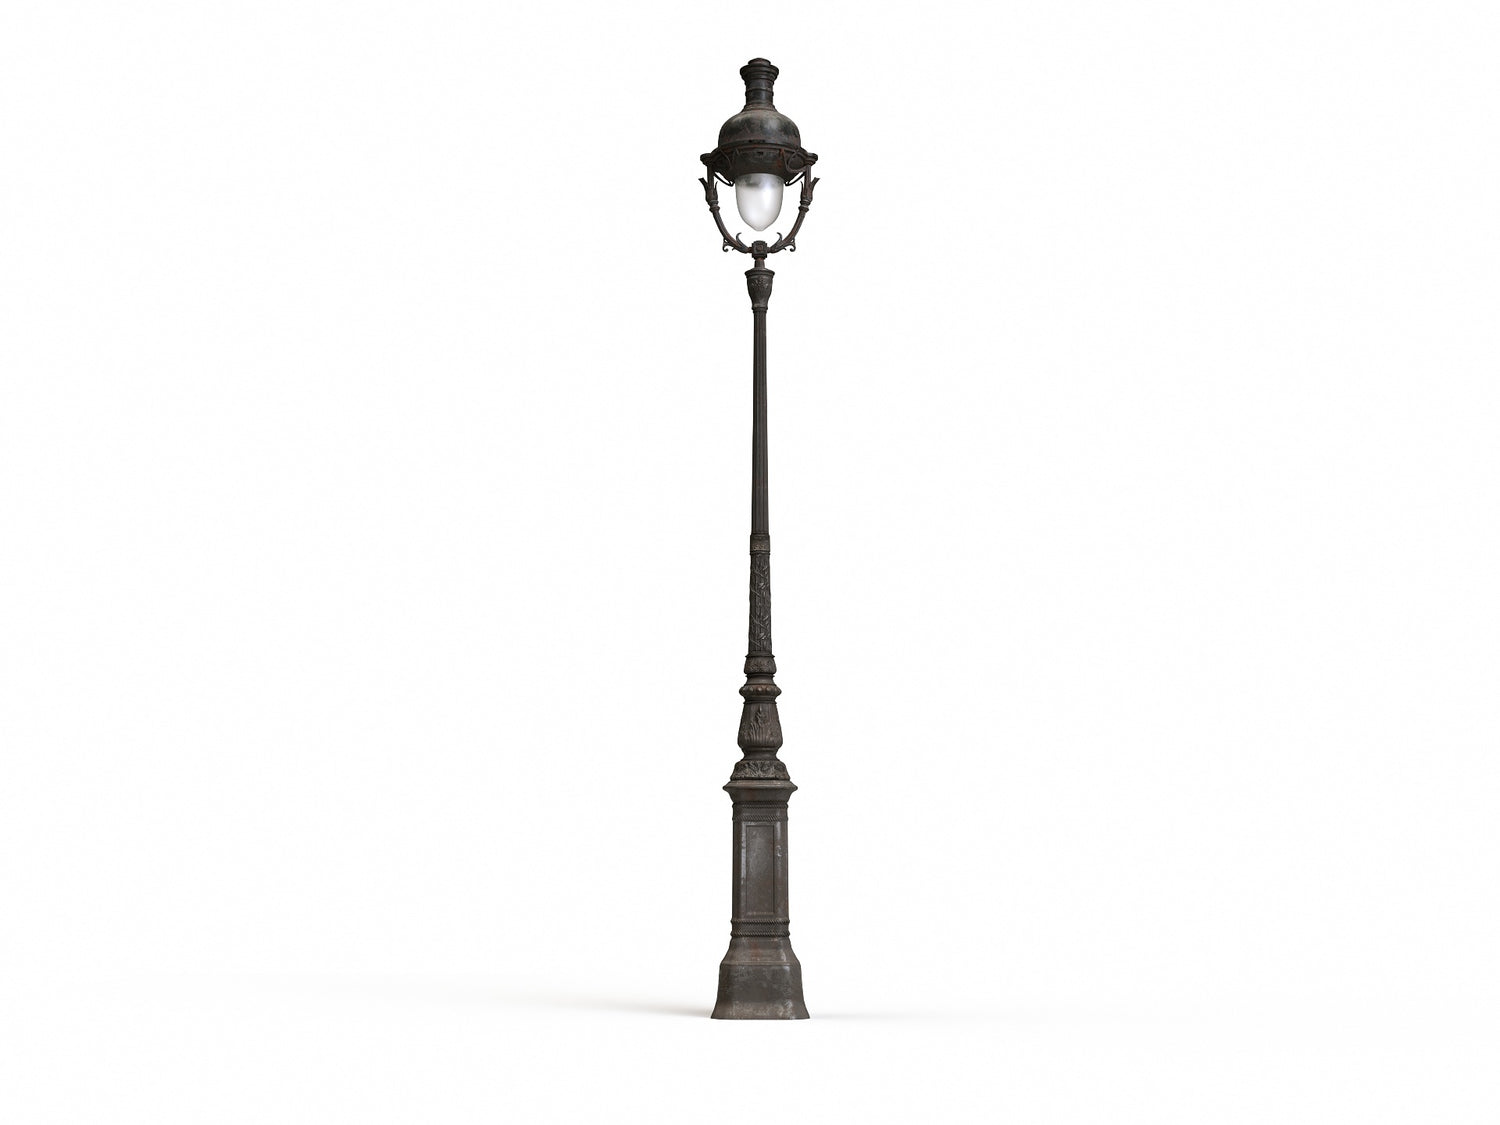 Parisian Vendôme Light Pole